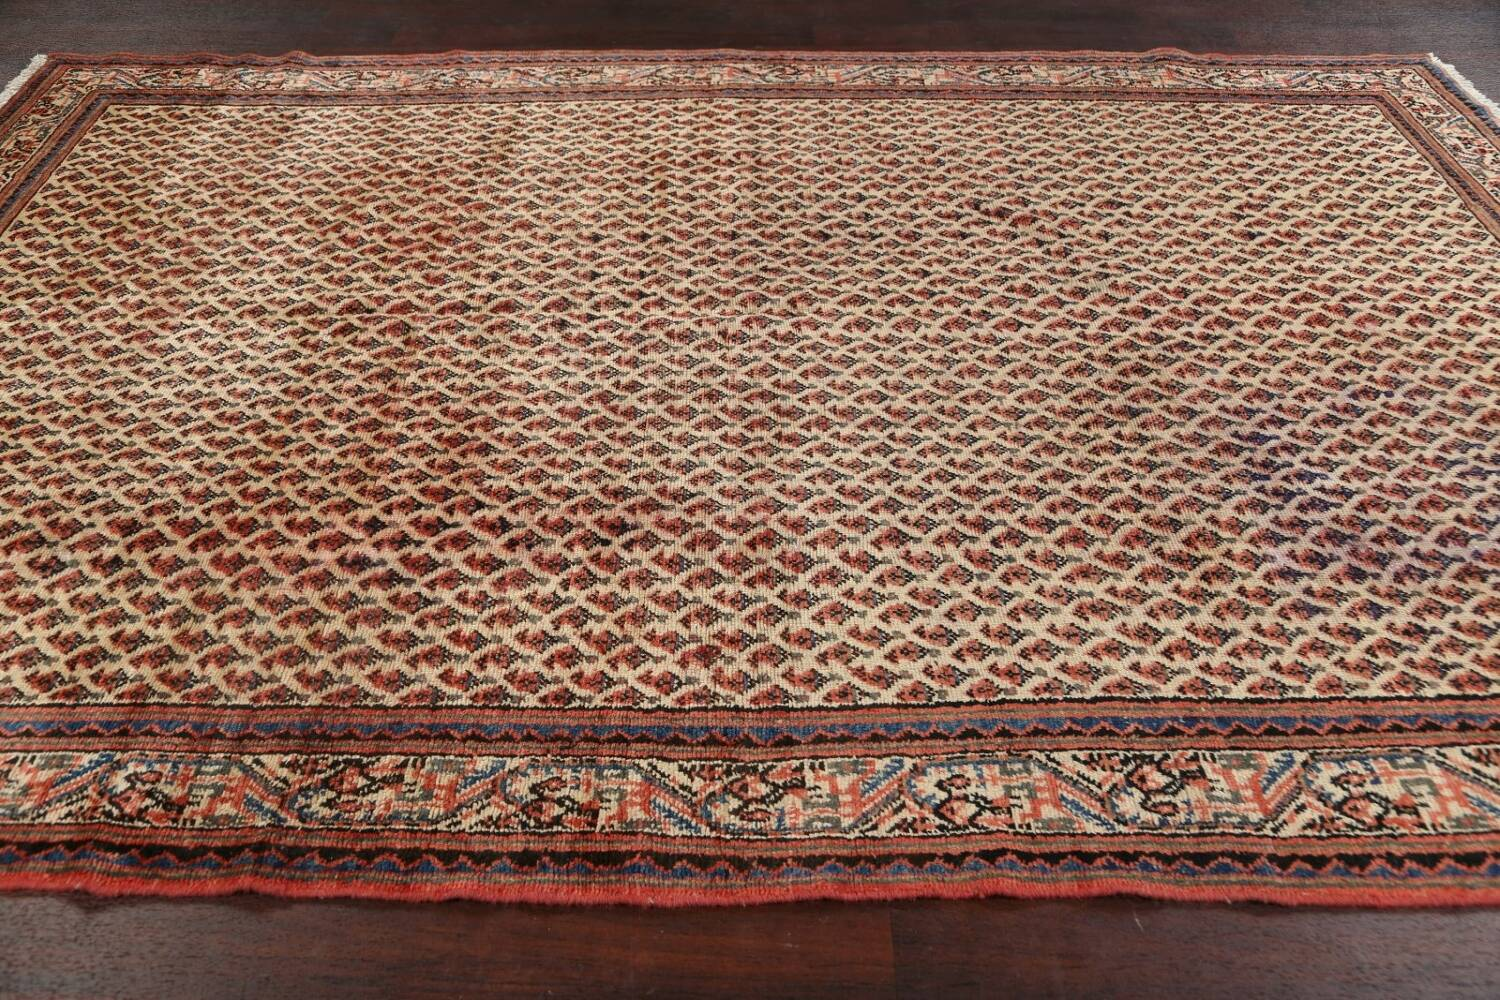 All-Over Boteh Botemir Persian Area Rug 7x11 image 17